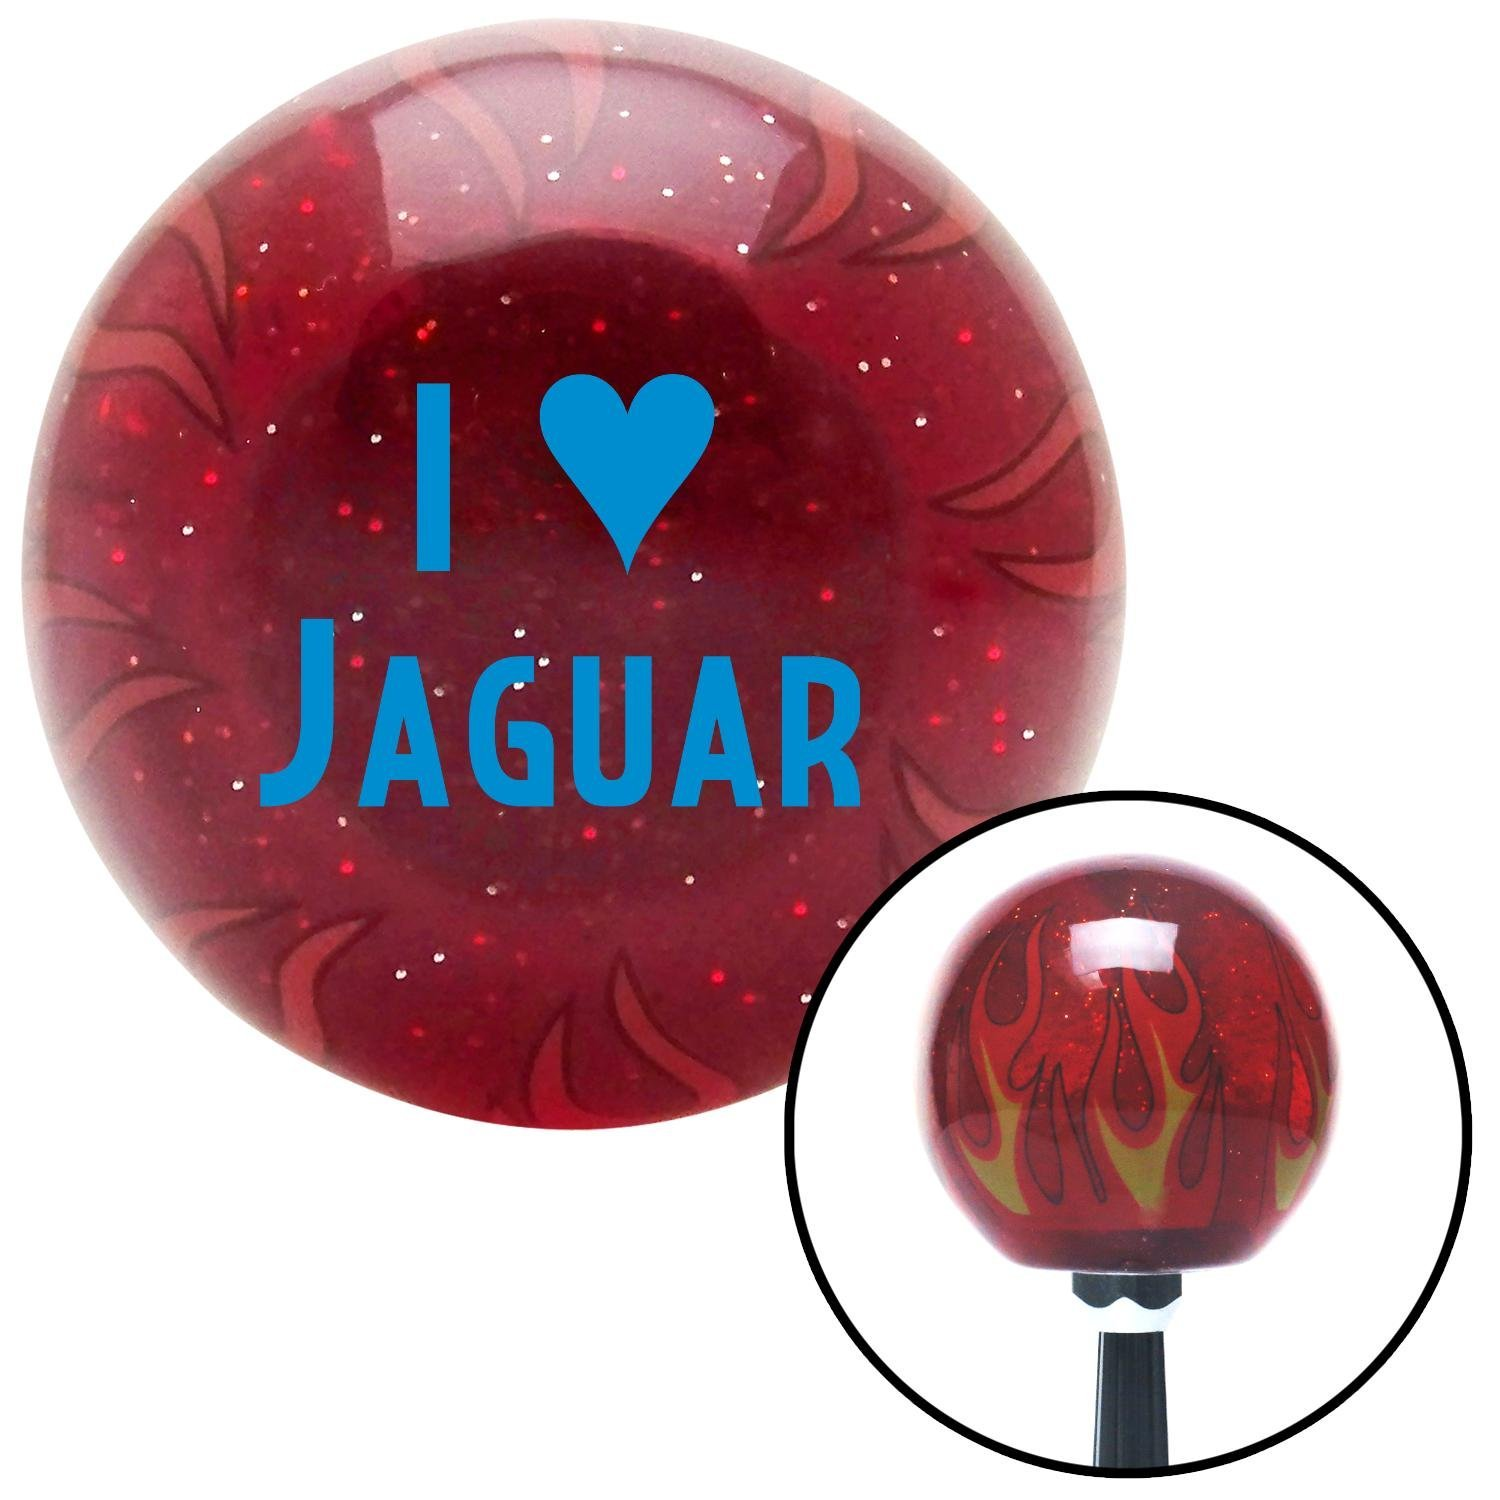 American Shifter 237338 Red Flame Metal Flake Shift Knob with M16 x 1.5 Insert Blue I 3 Jaguar